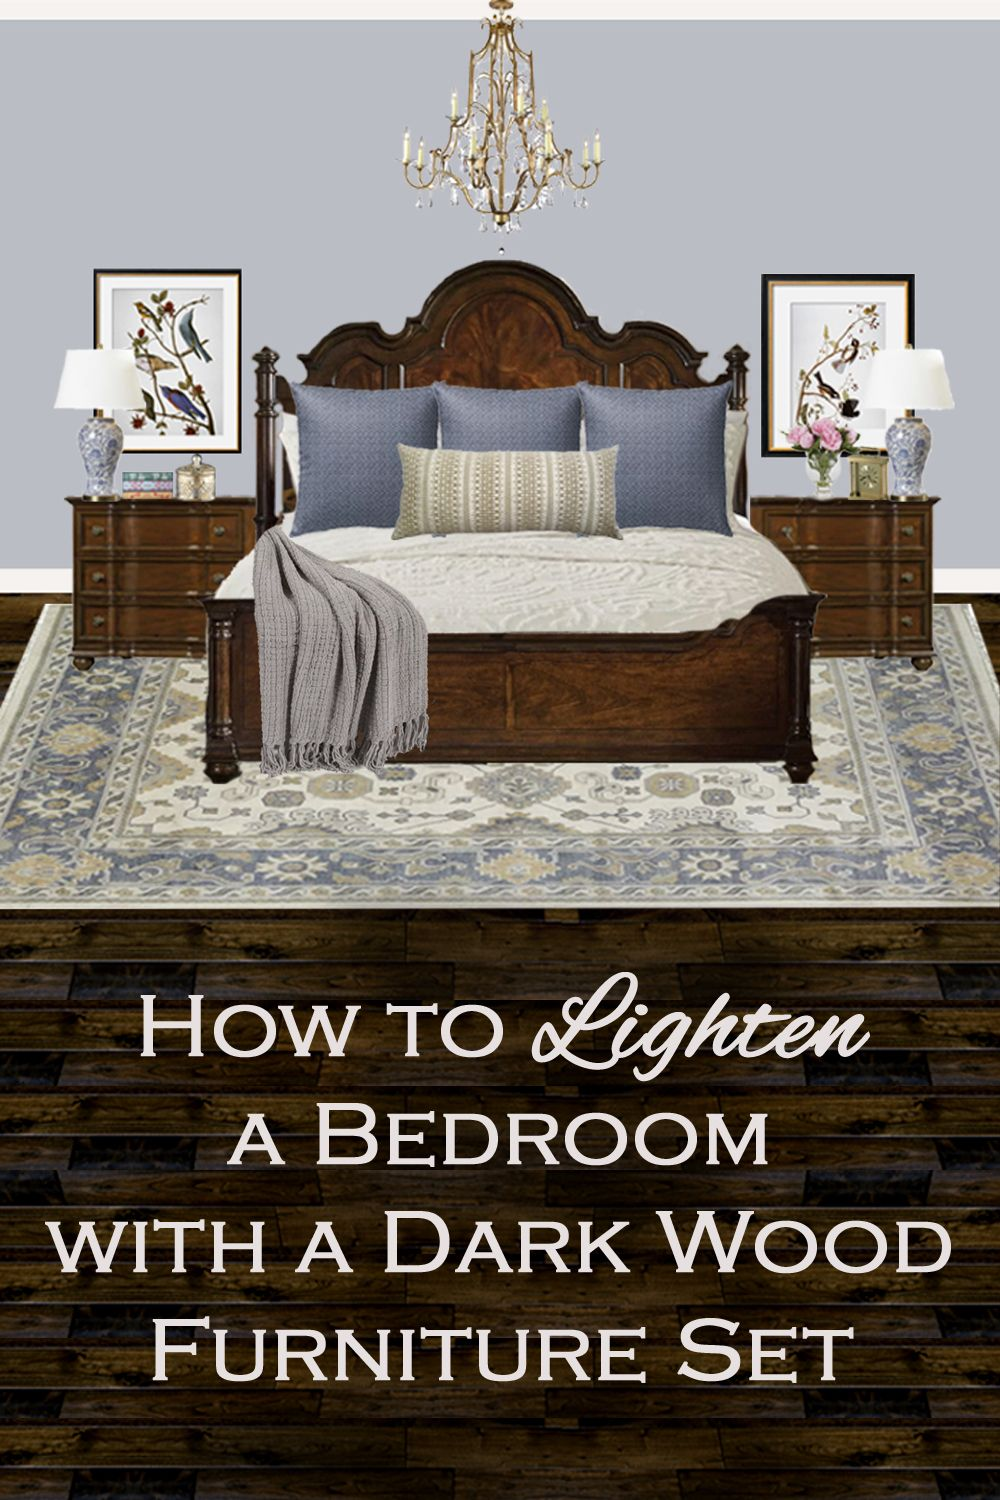 How to lighten a bedroom with a dark wood furniture set in